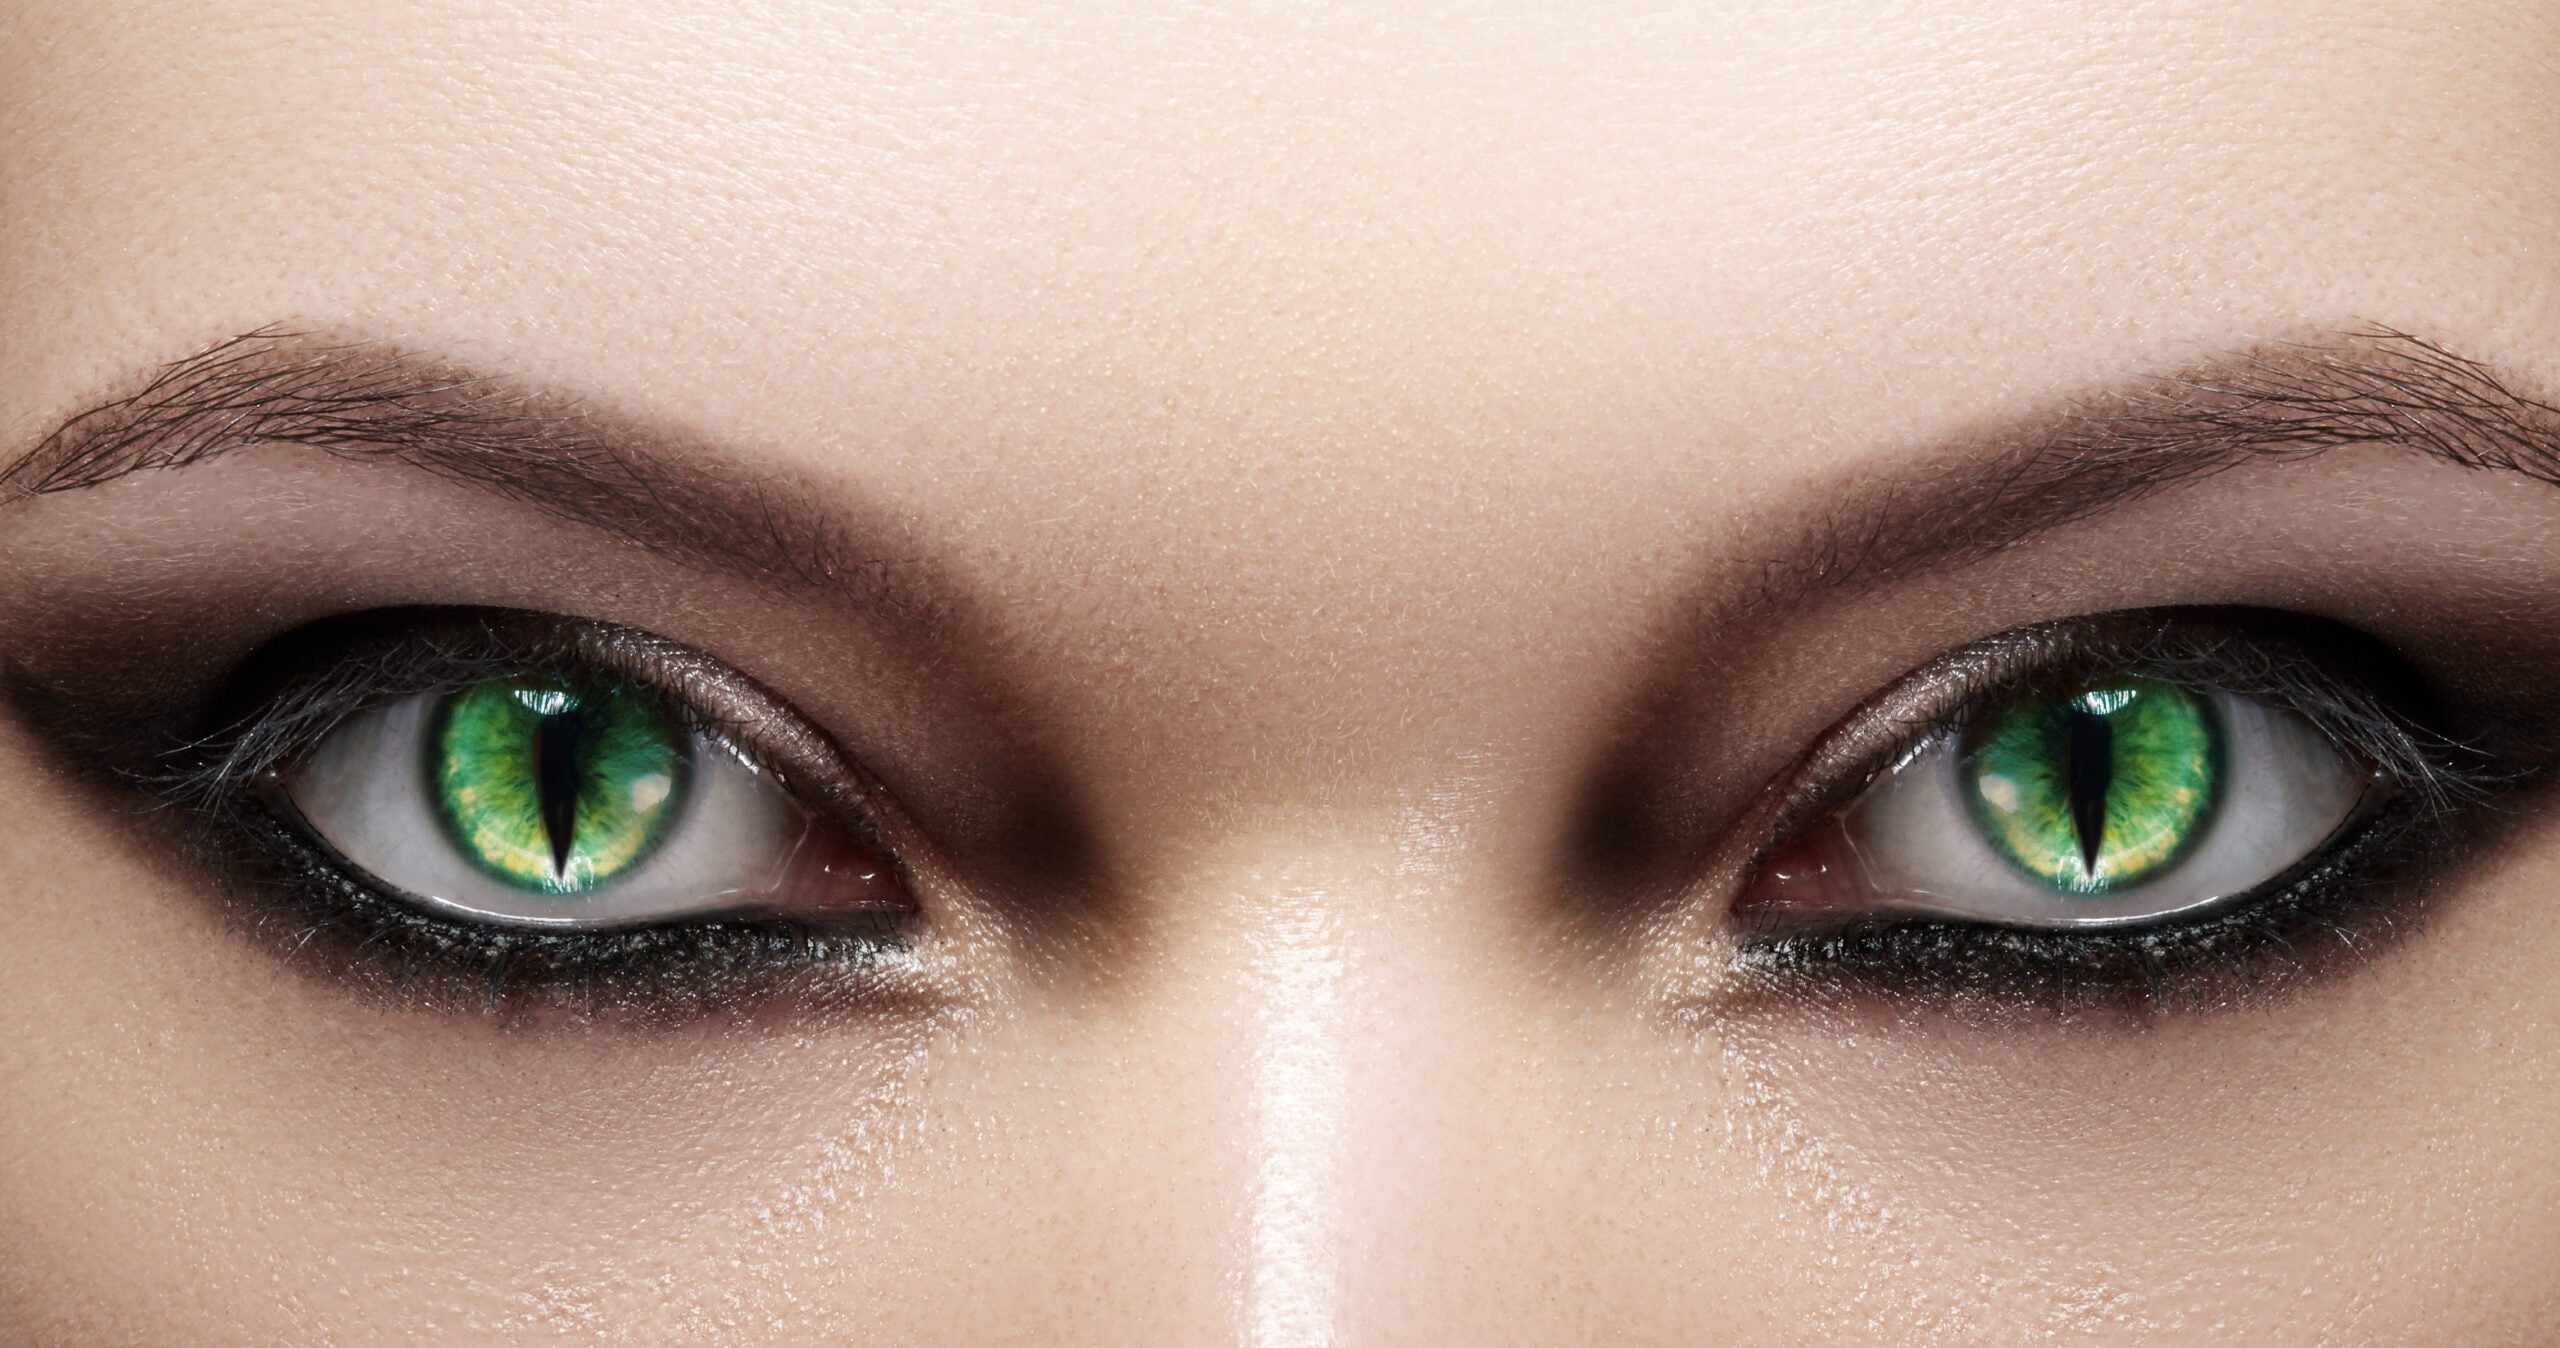 Those fun Halloween contact lenses may inflict real horror on your eyeballs